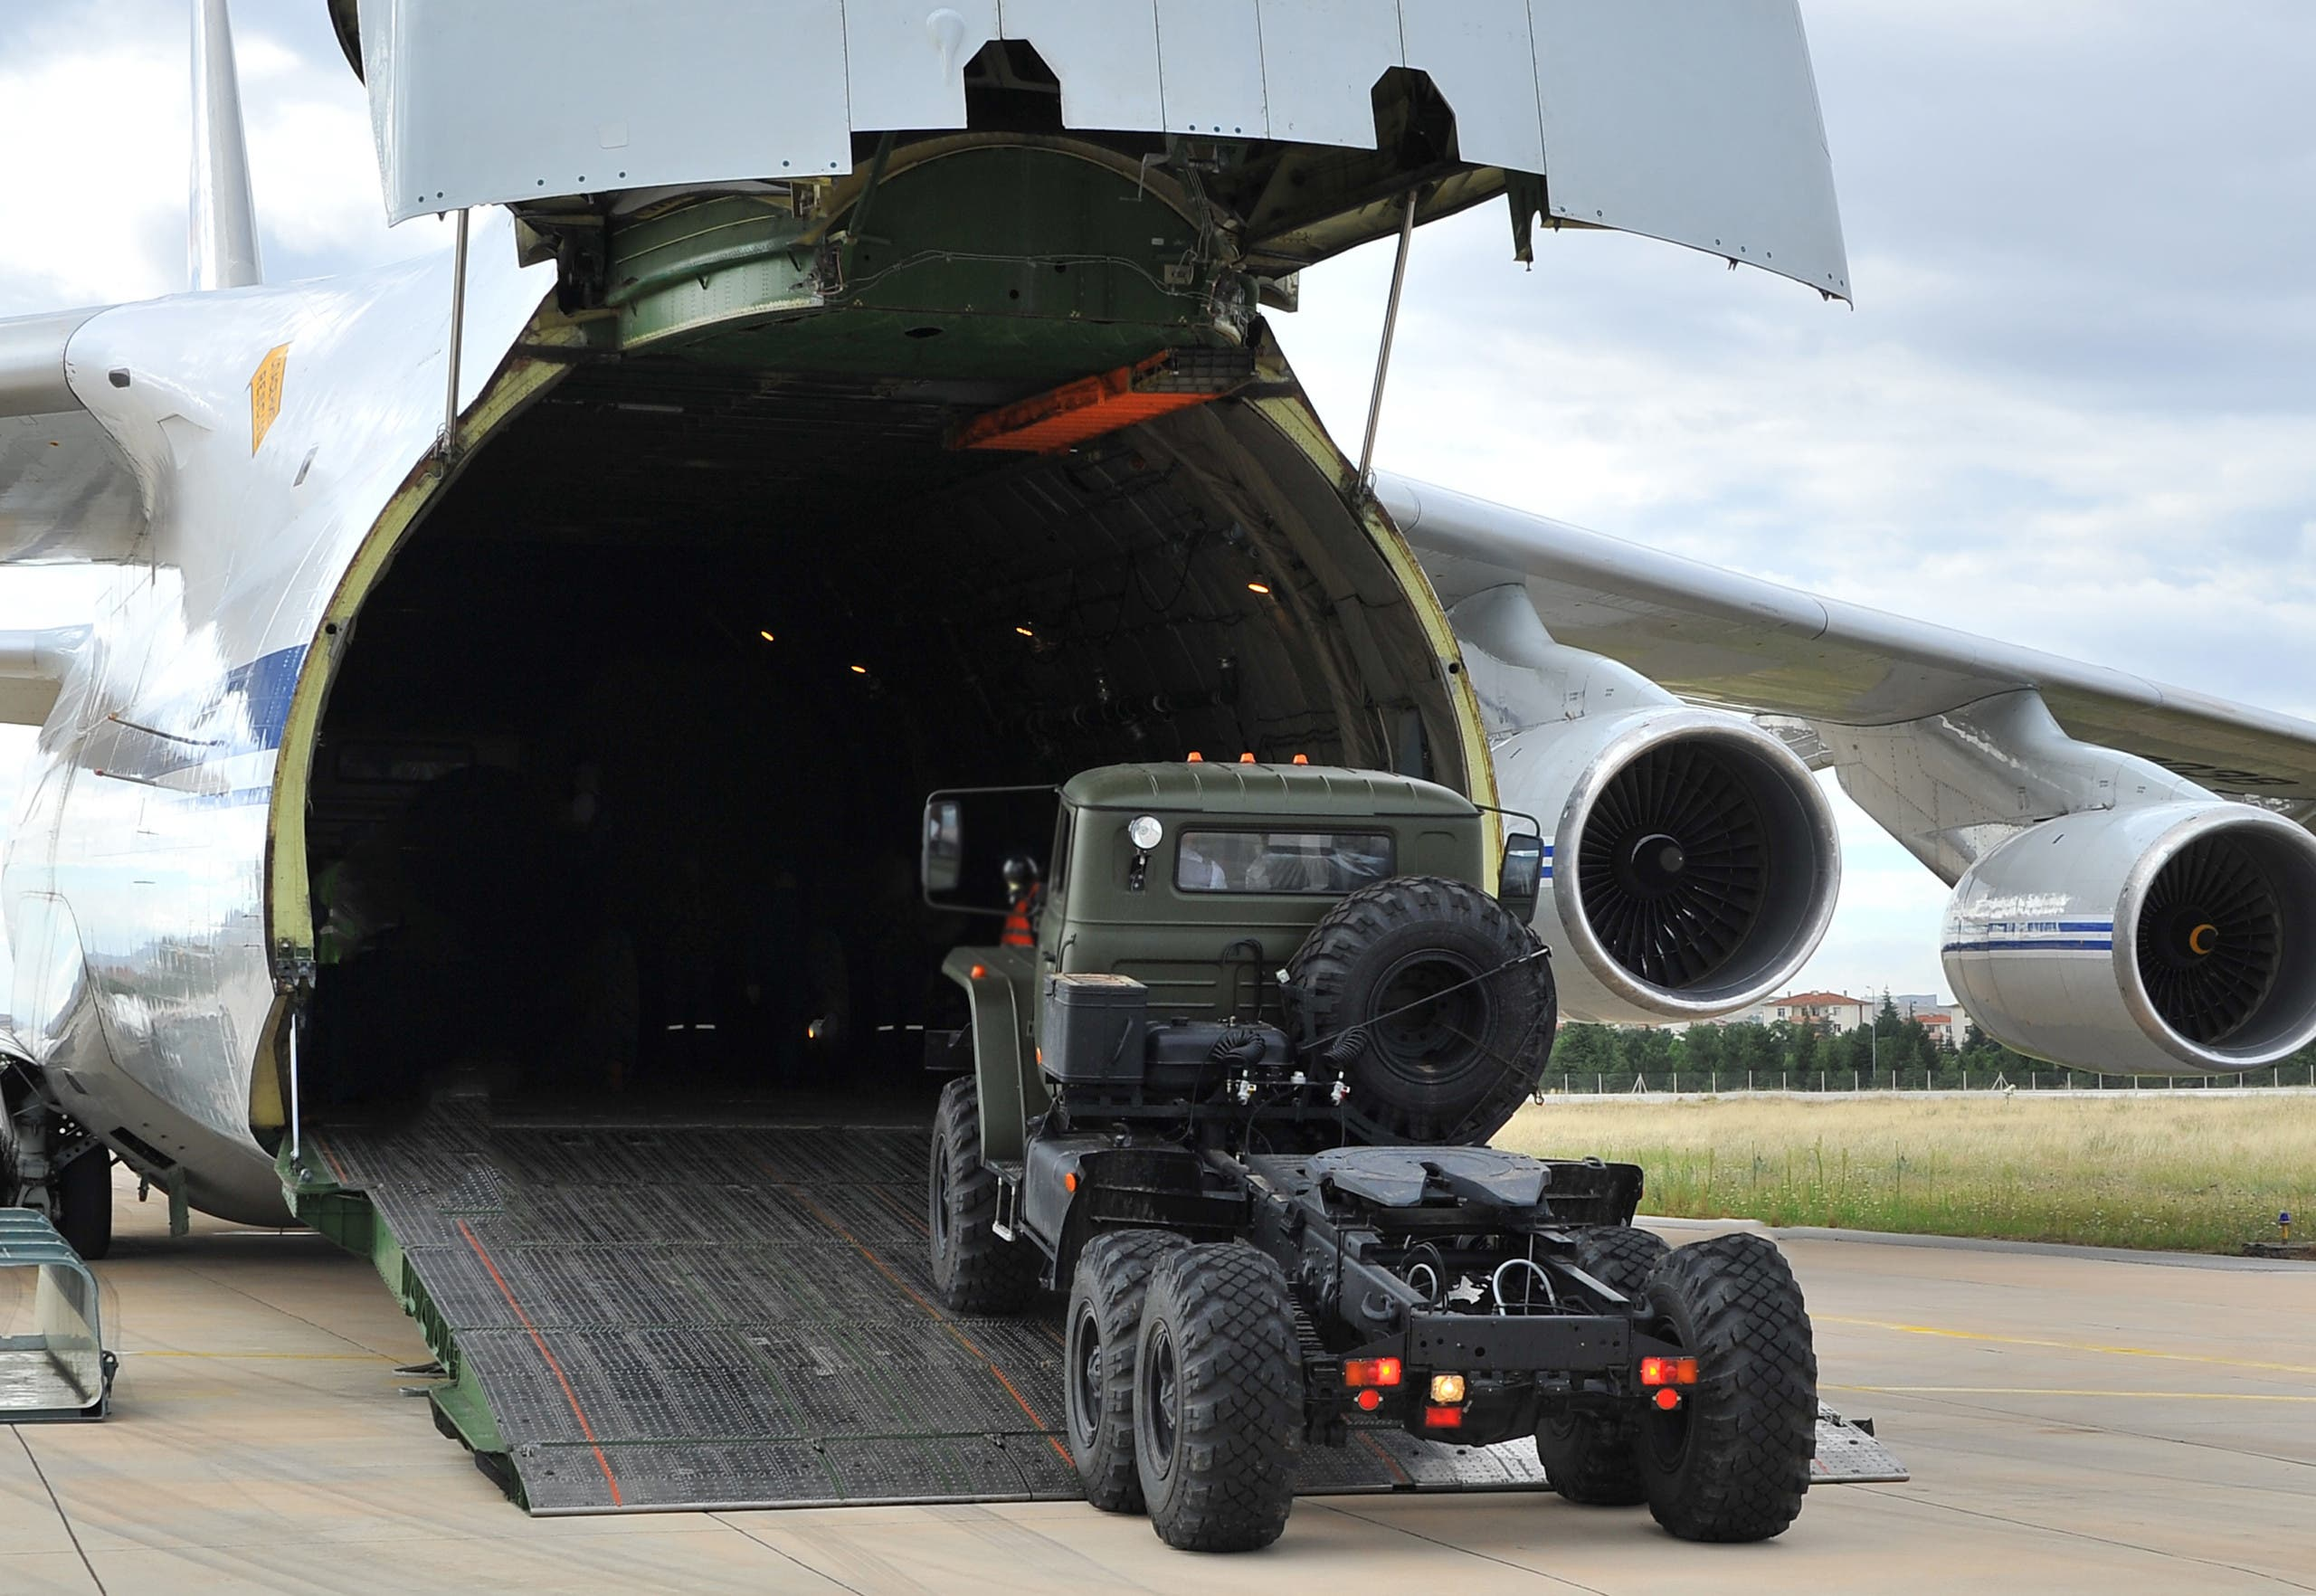 A Russian military cargo plane, carrying S-400 missile defense system from Russia, during its unloading at the Murted military airbase (also known as Akincilar millitary airbase), in Ankara. (File photo: Reuters)